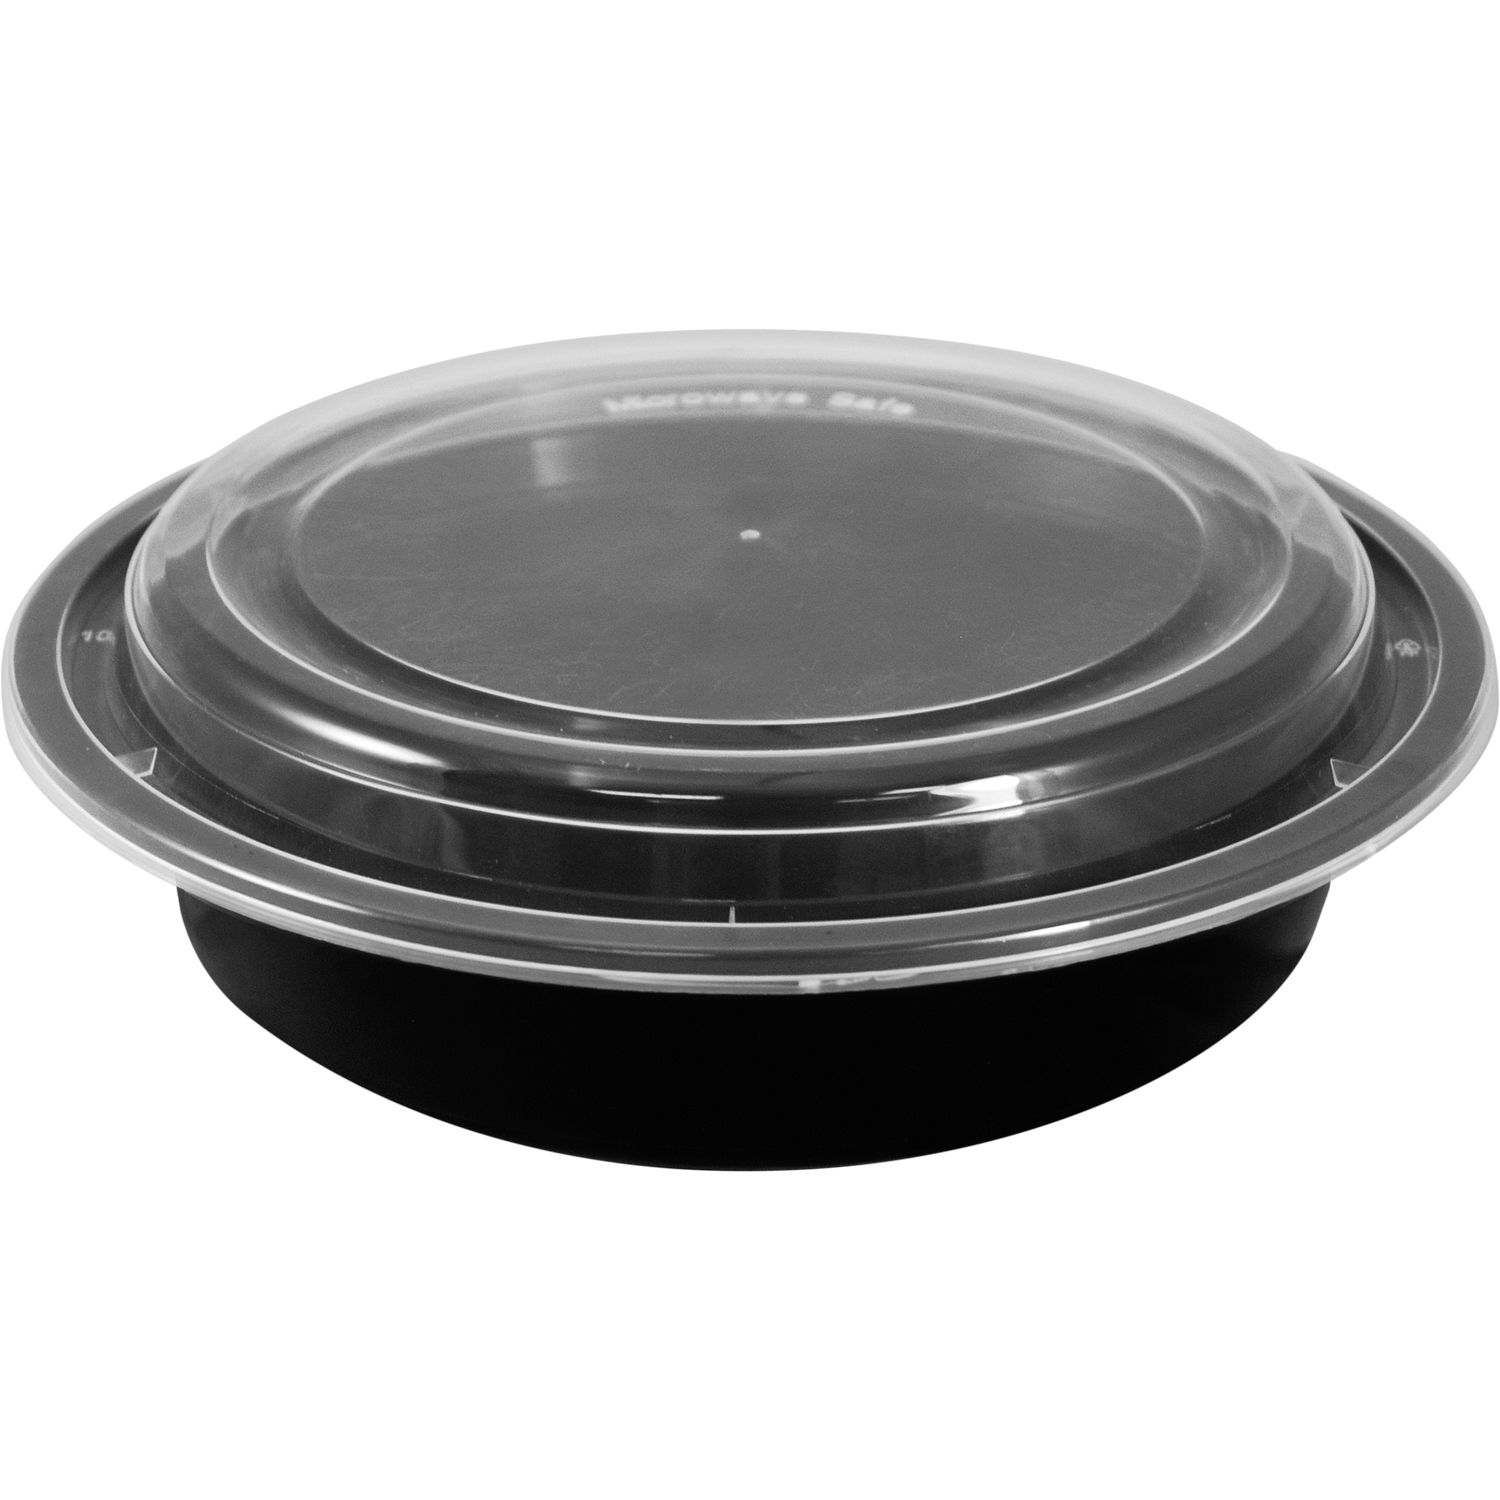 Culpak 48 oz Round Base / Lid Microwavable Container 150 ct